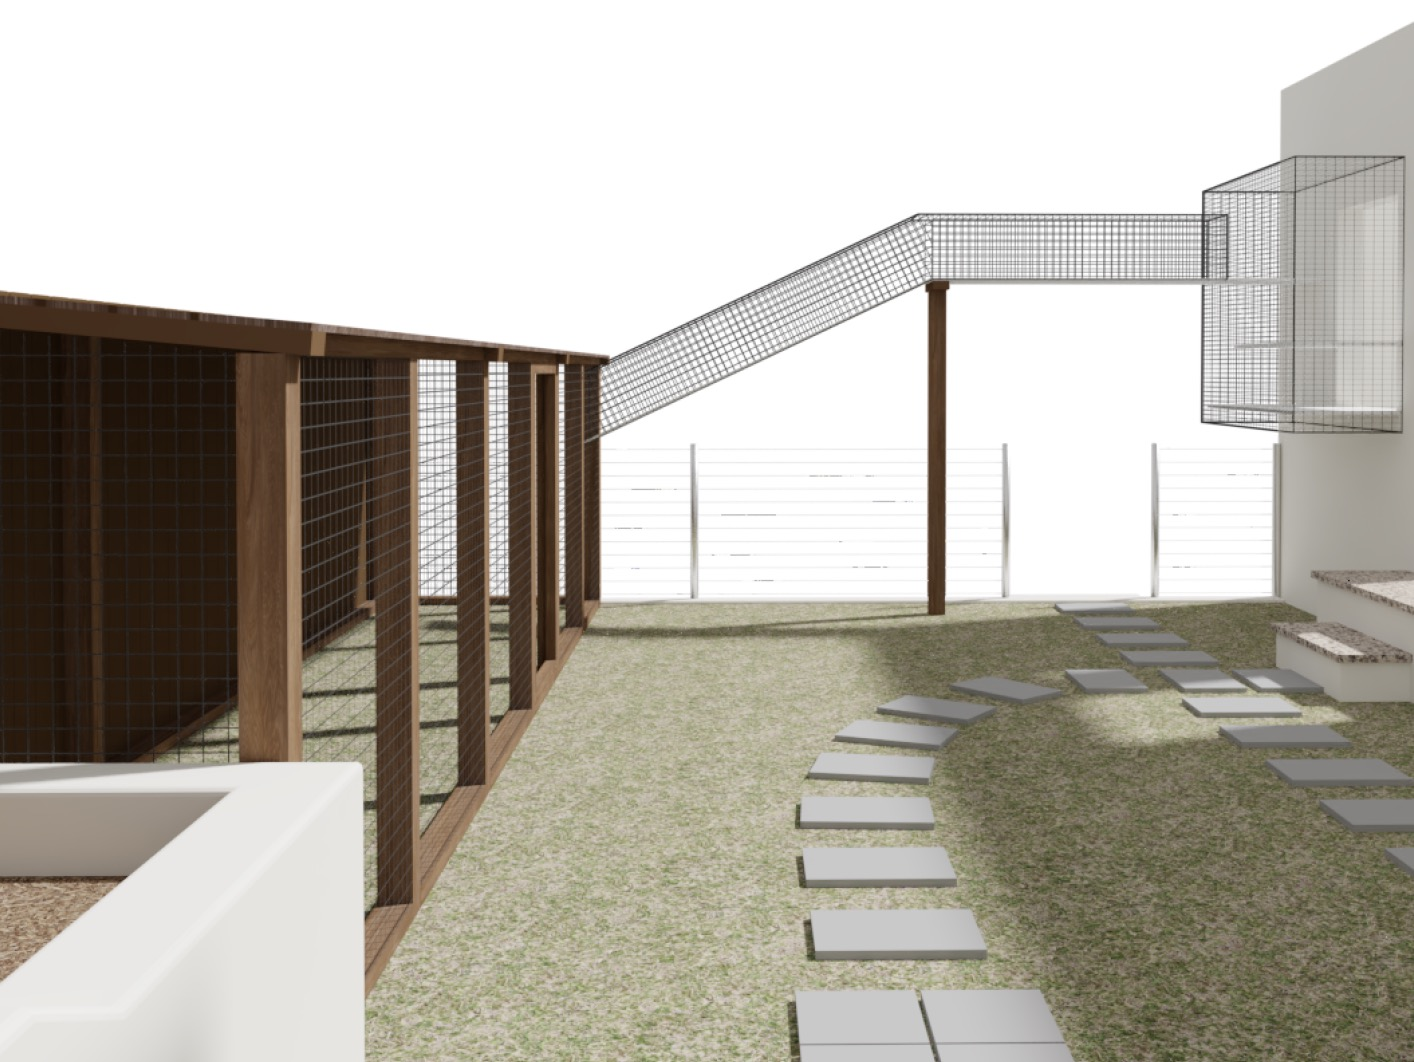 Silver Lake Catio Rendering